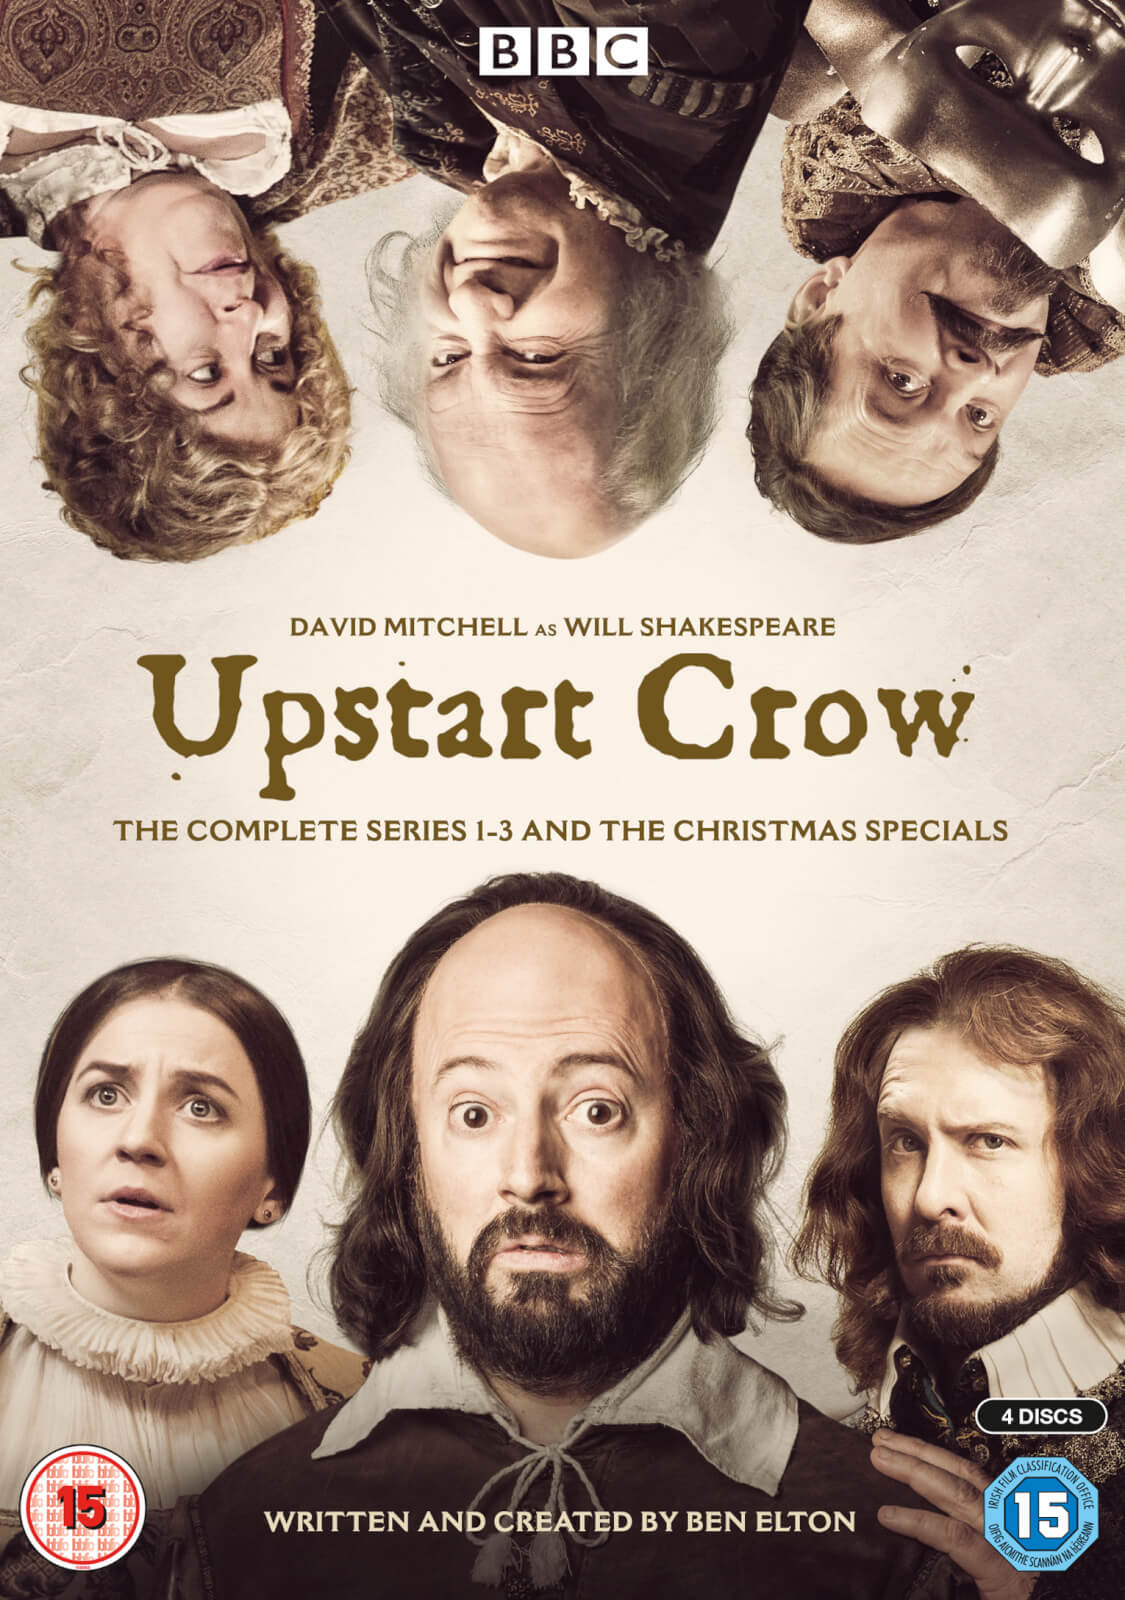 Upstart Crow - The Complete Series 1-3 And The Christmas Specials